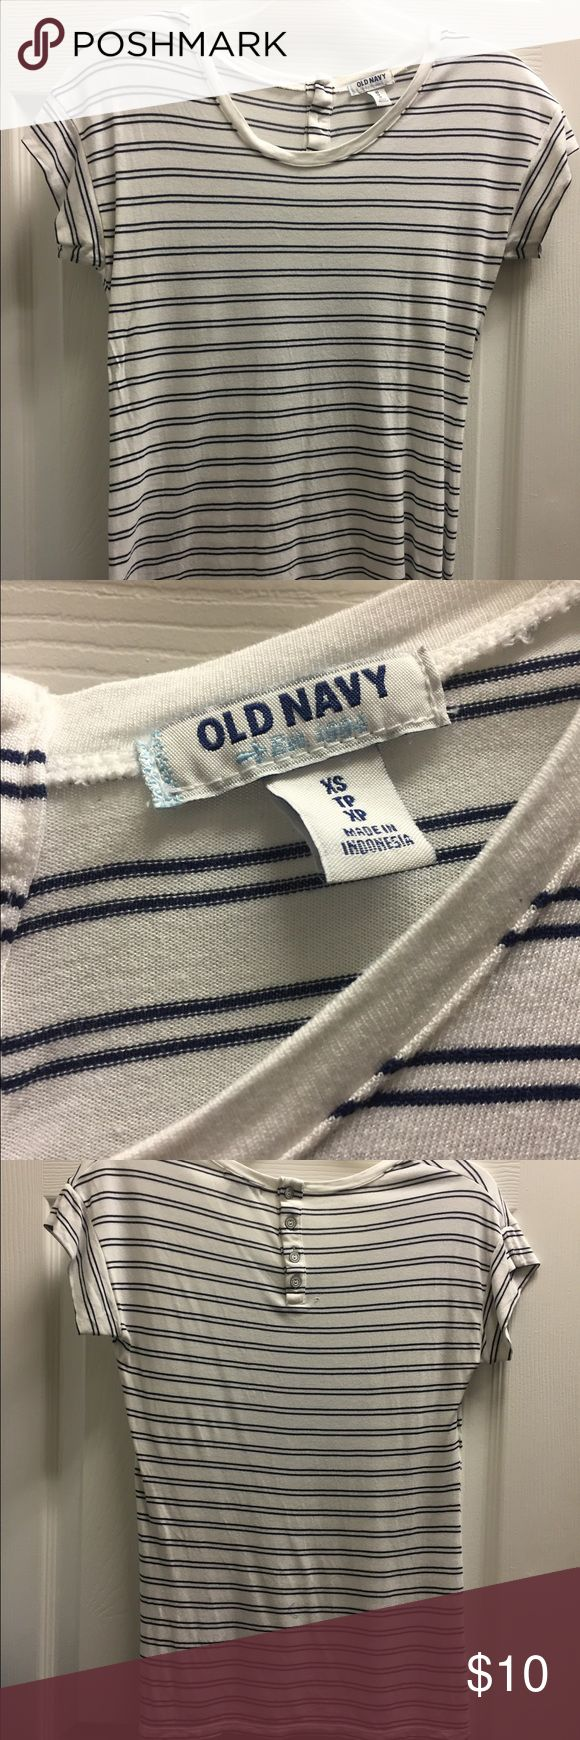 Old navy tee Old navy tee. Gently worn, no stains, no rips Old Navy Tops Tees - Short Sleeve